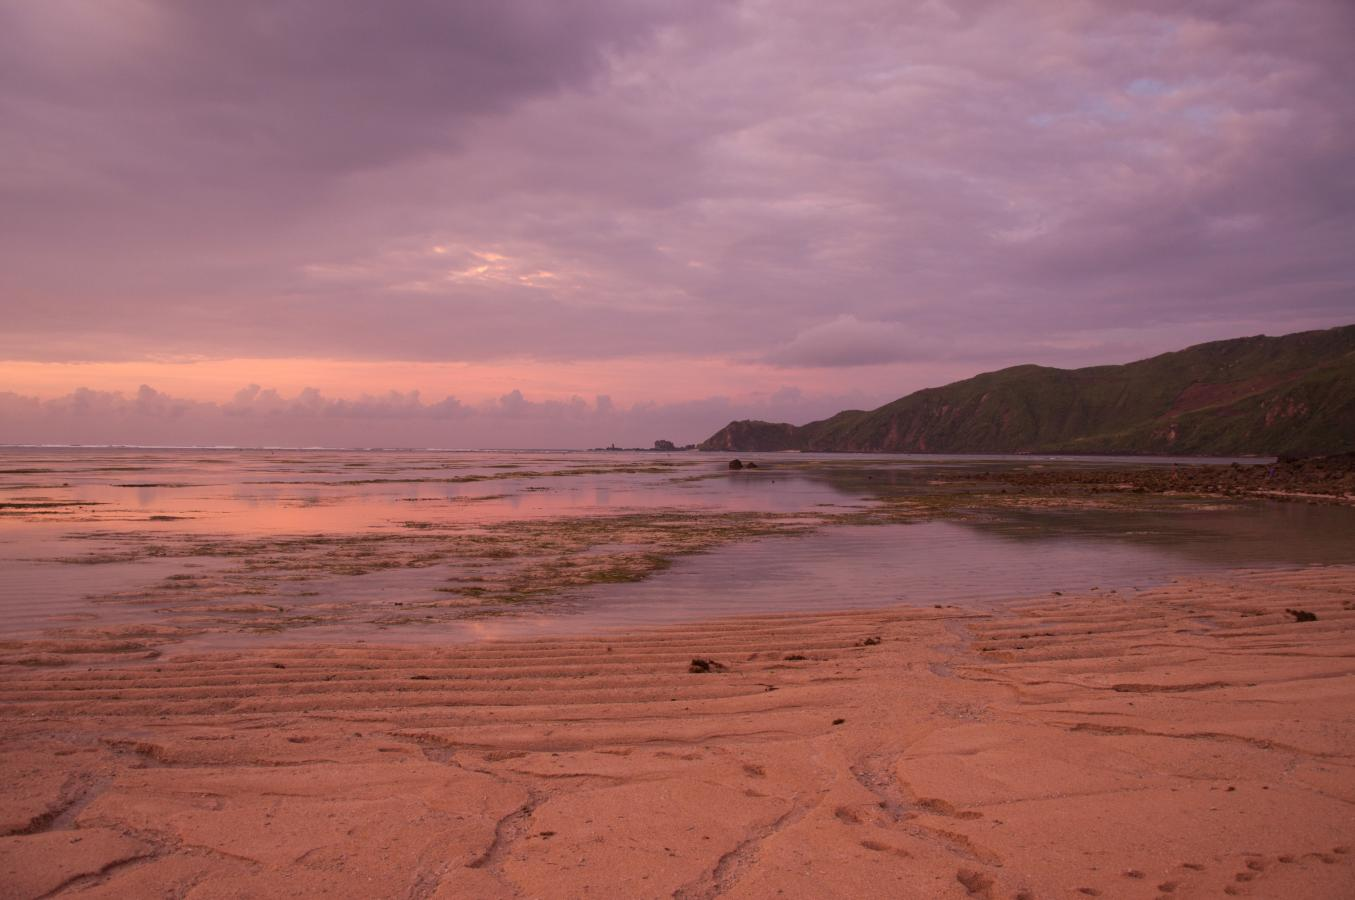 sunrise-at-kuta-lombok-2010